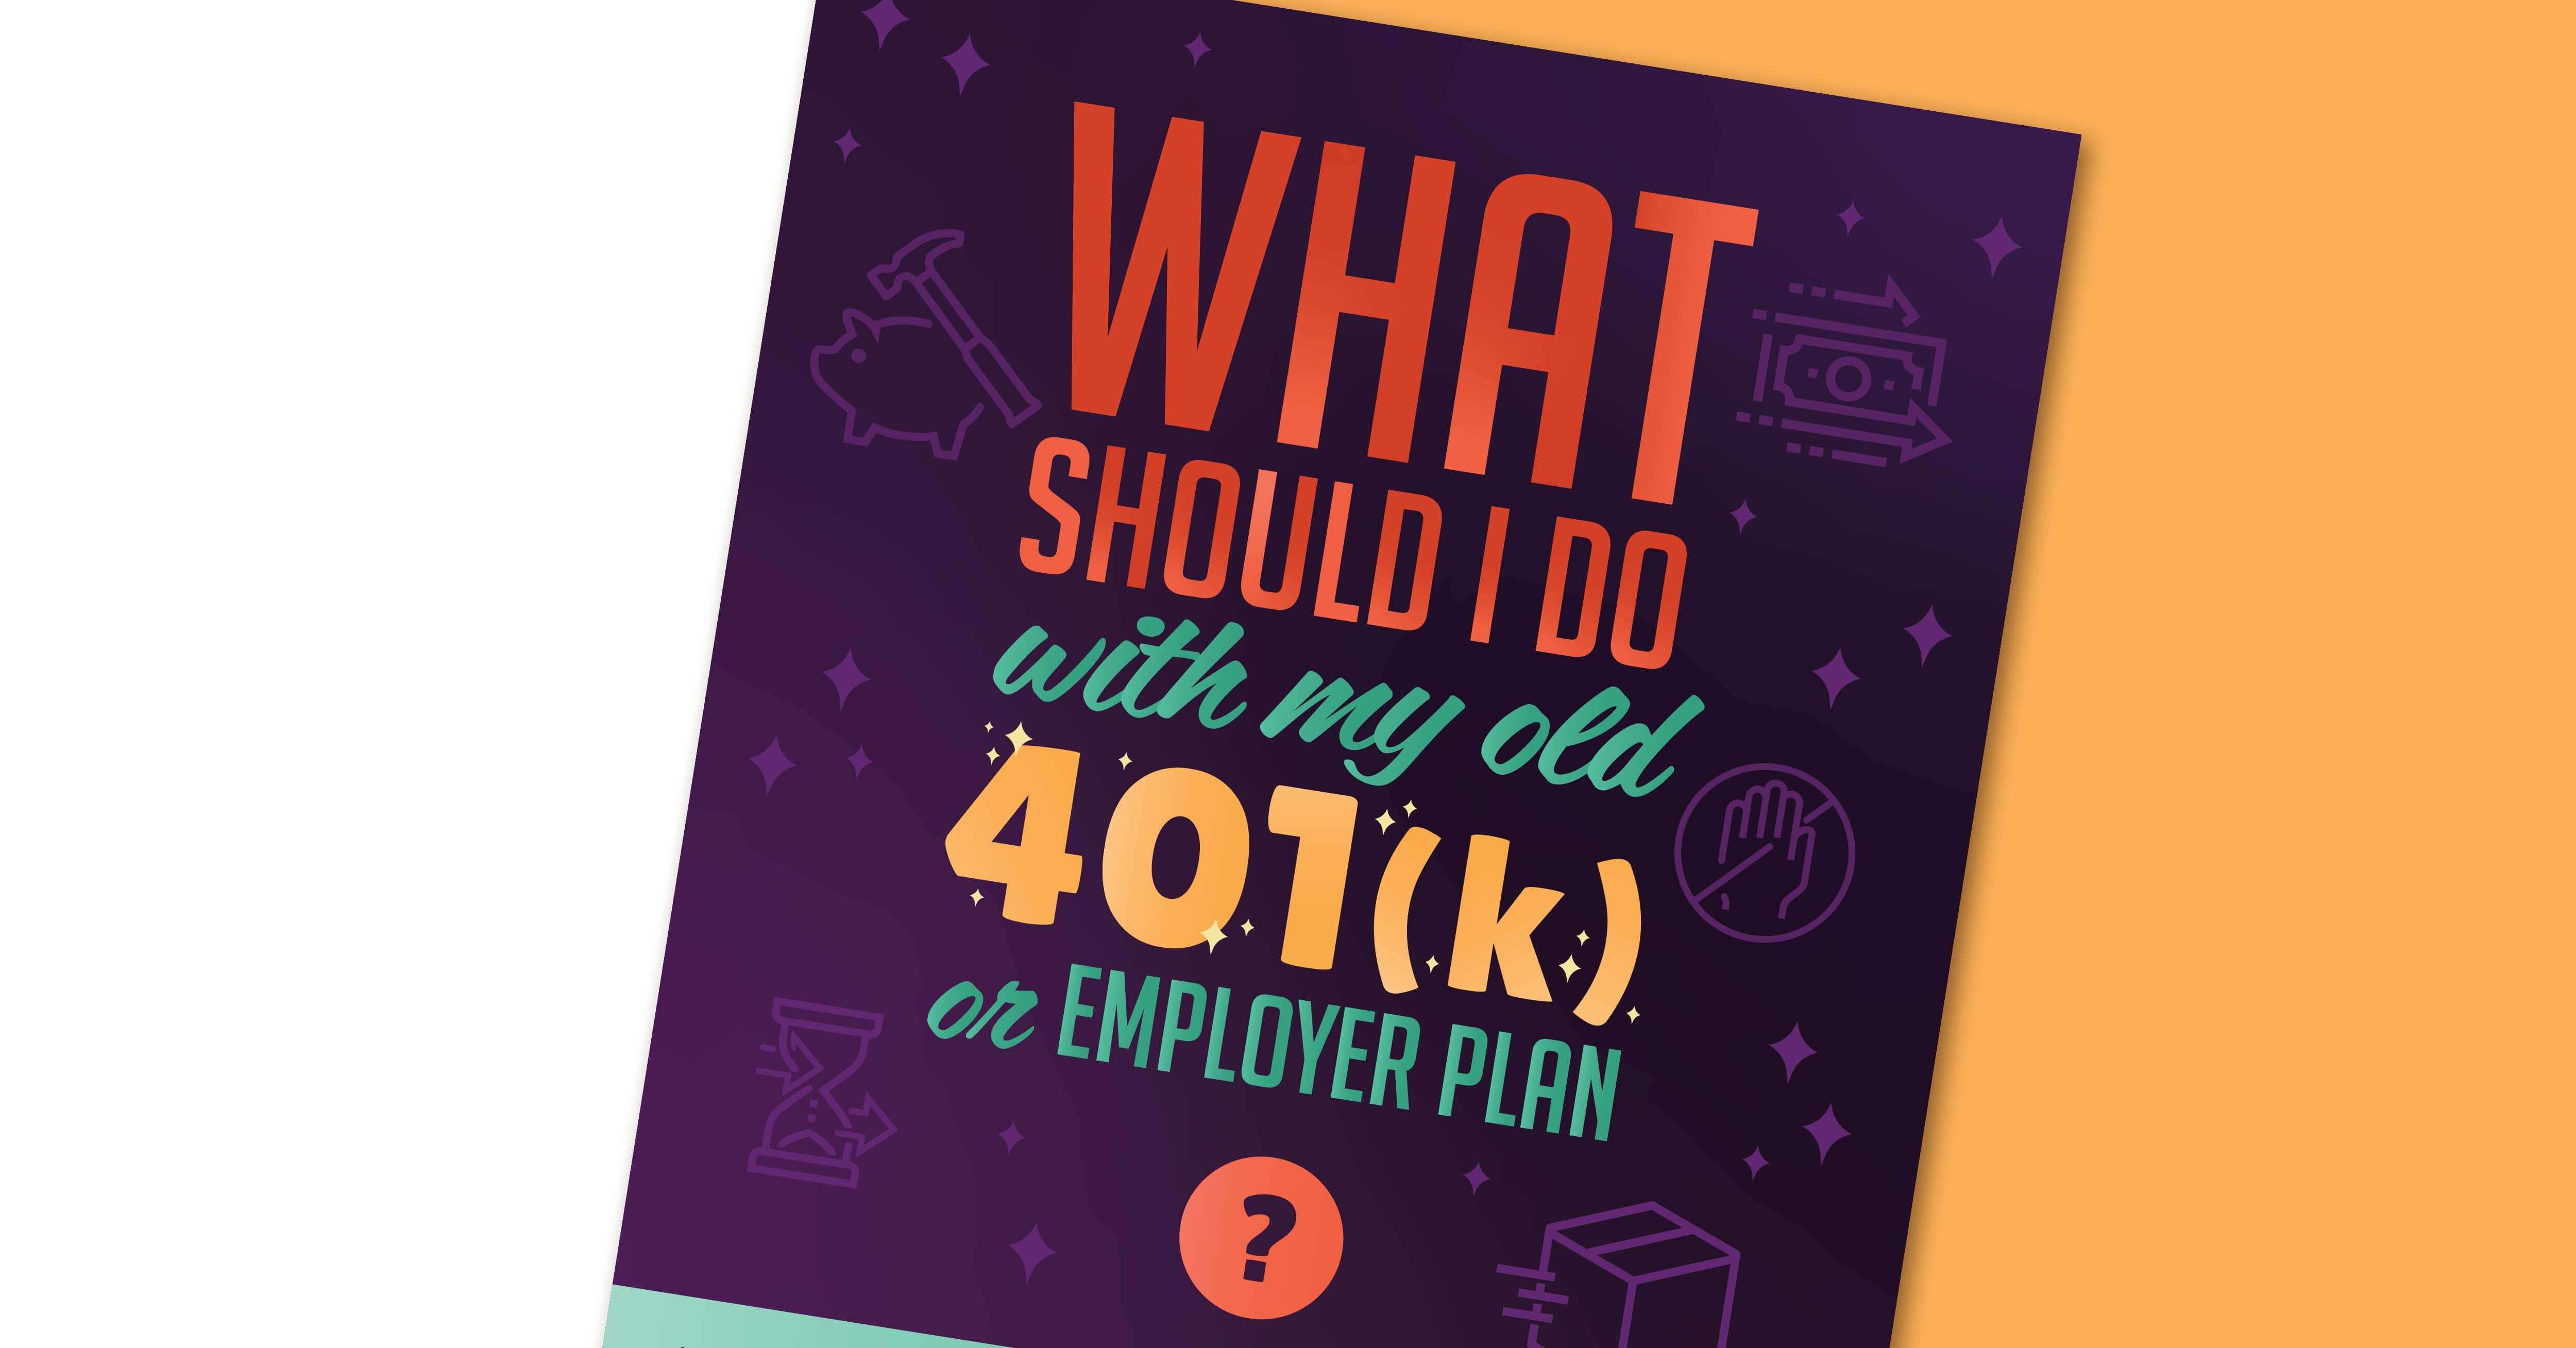 What Should I Do With My Old 401(k) or Employer Plan? Thumbnail